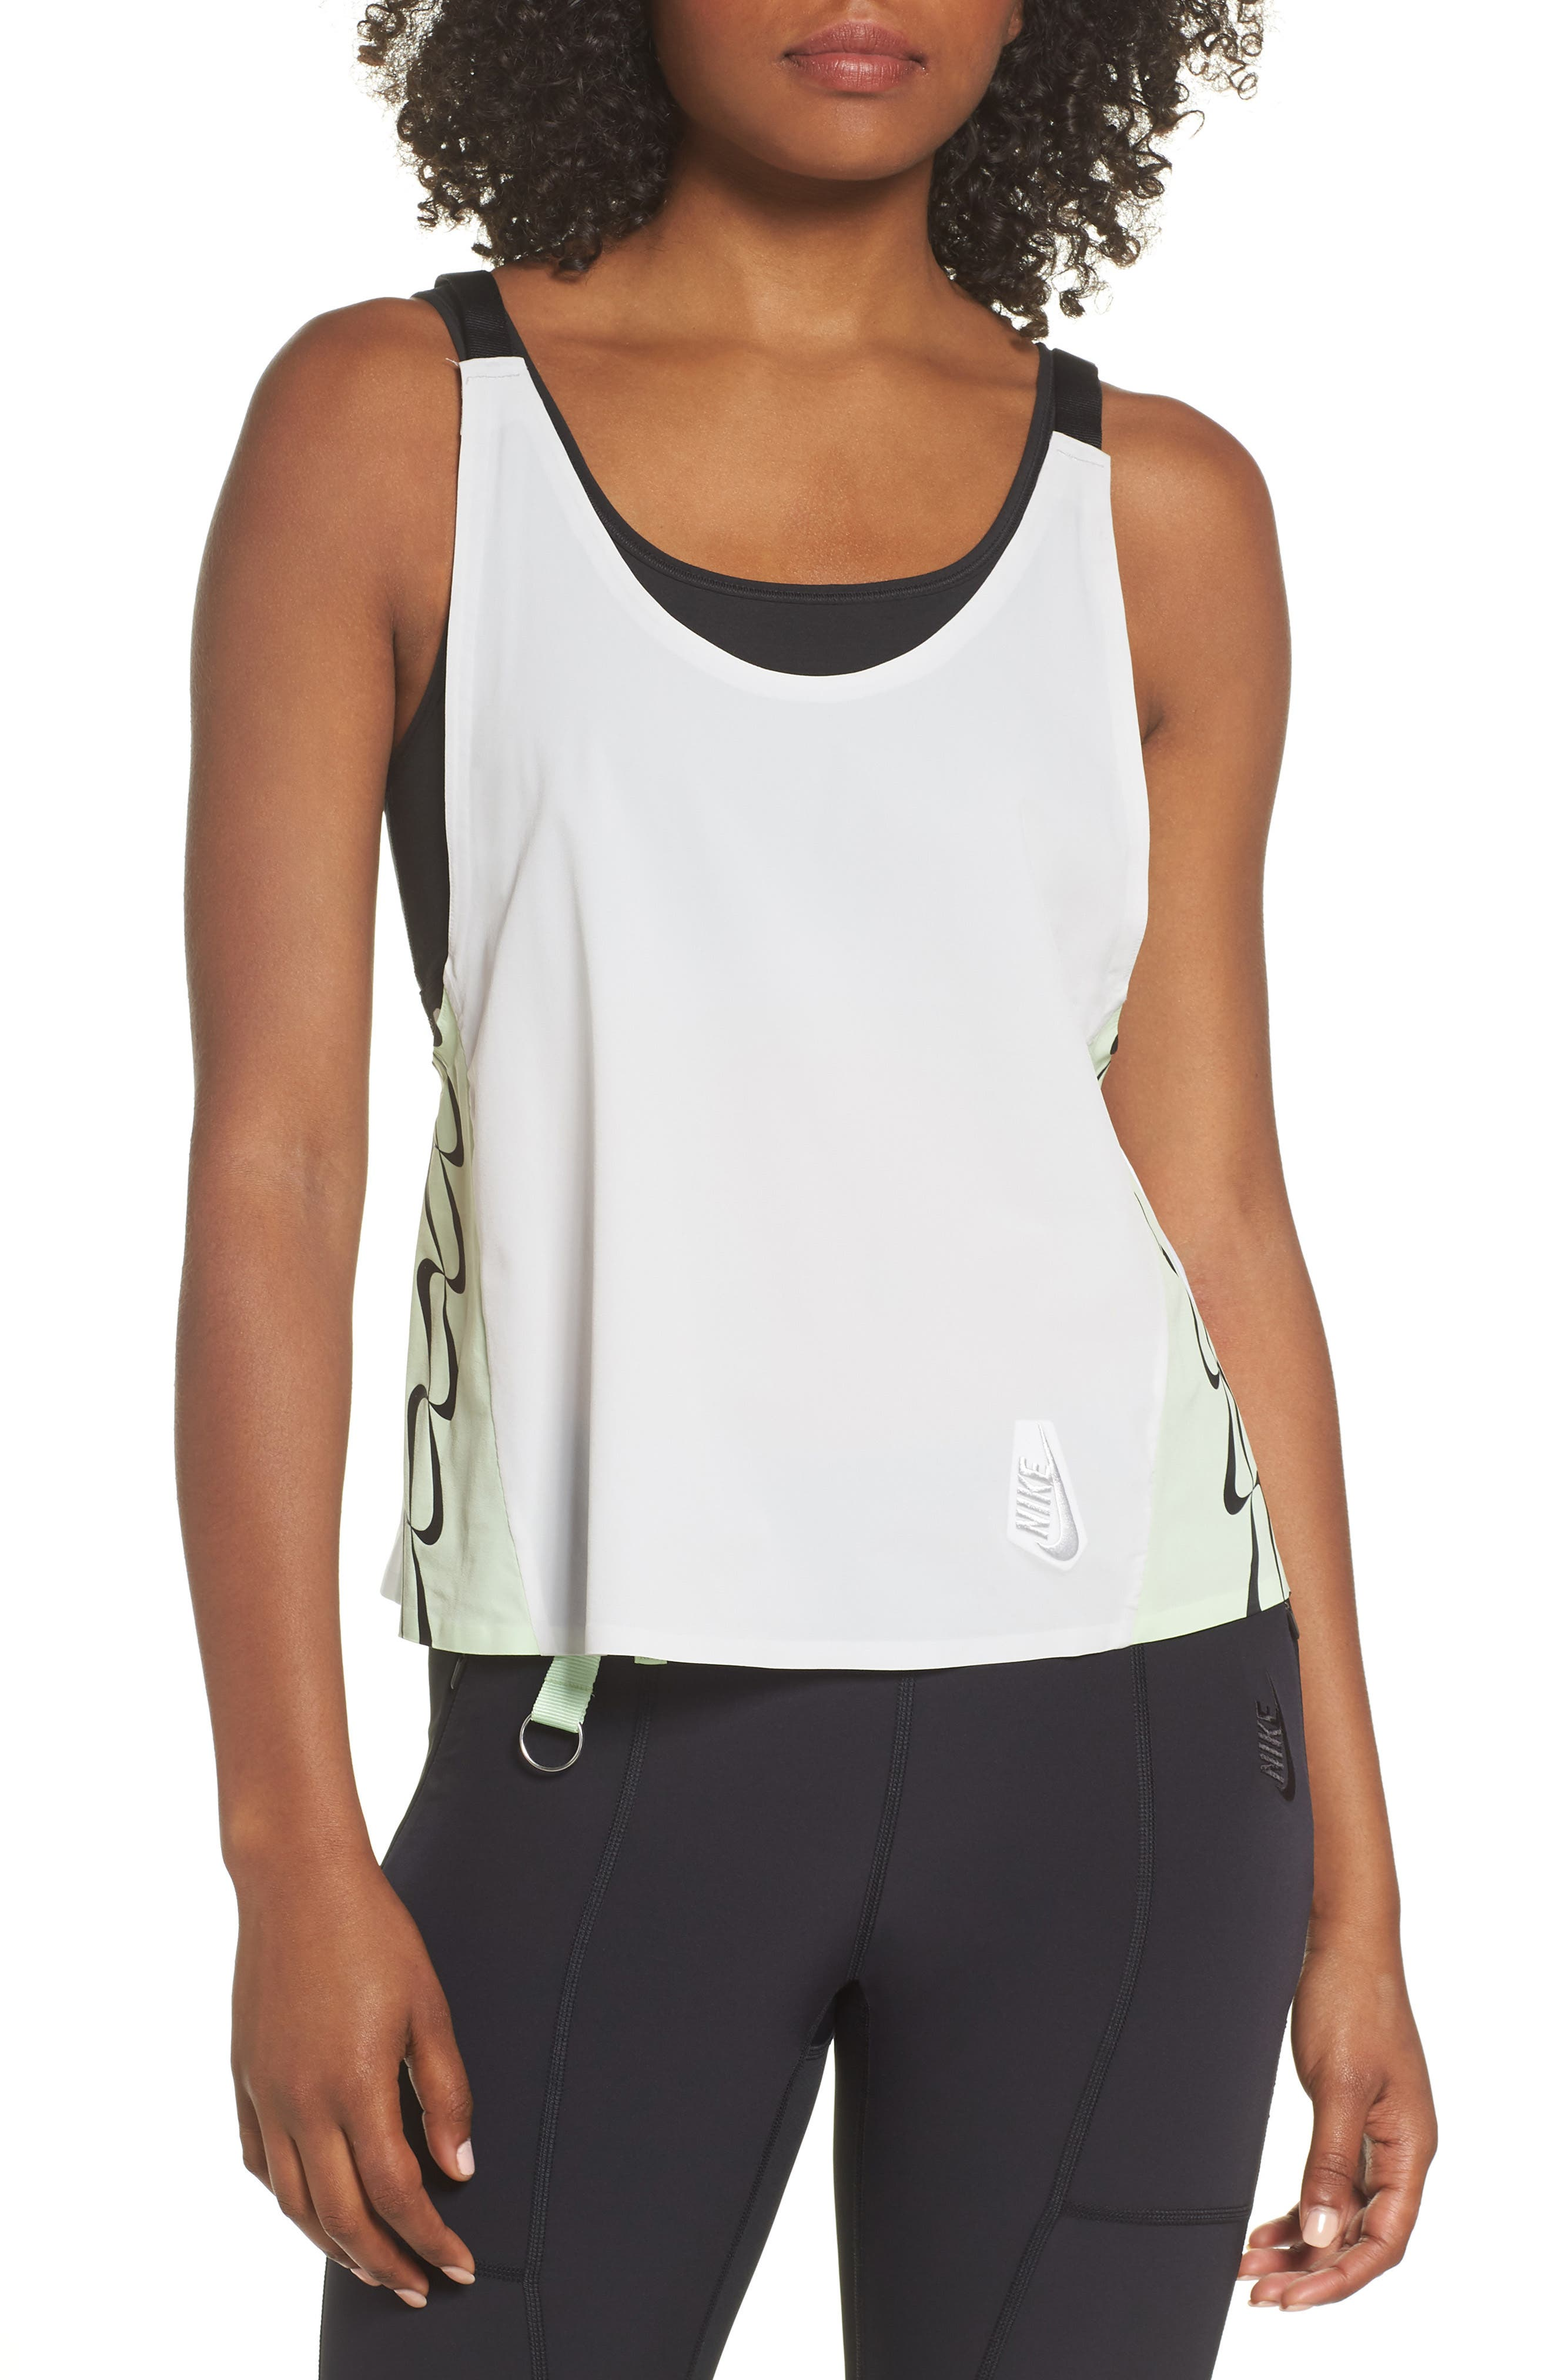 NRG Women's Colorblock Tank,                         Main,                         color, Vast Grey/ White/ Vapor Green